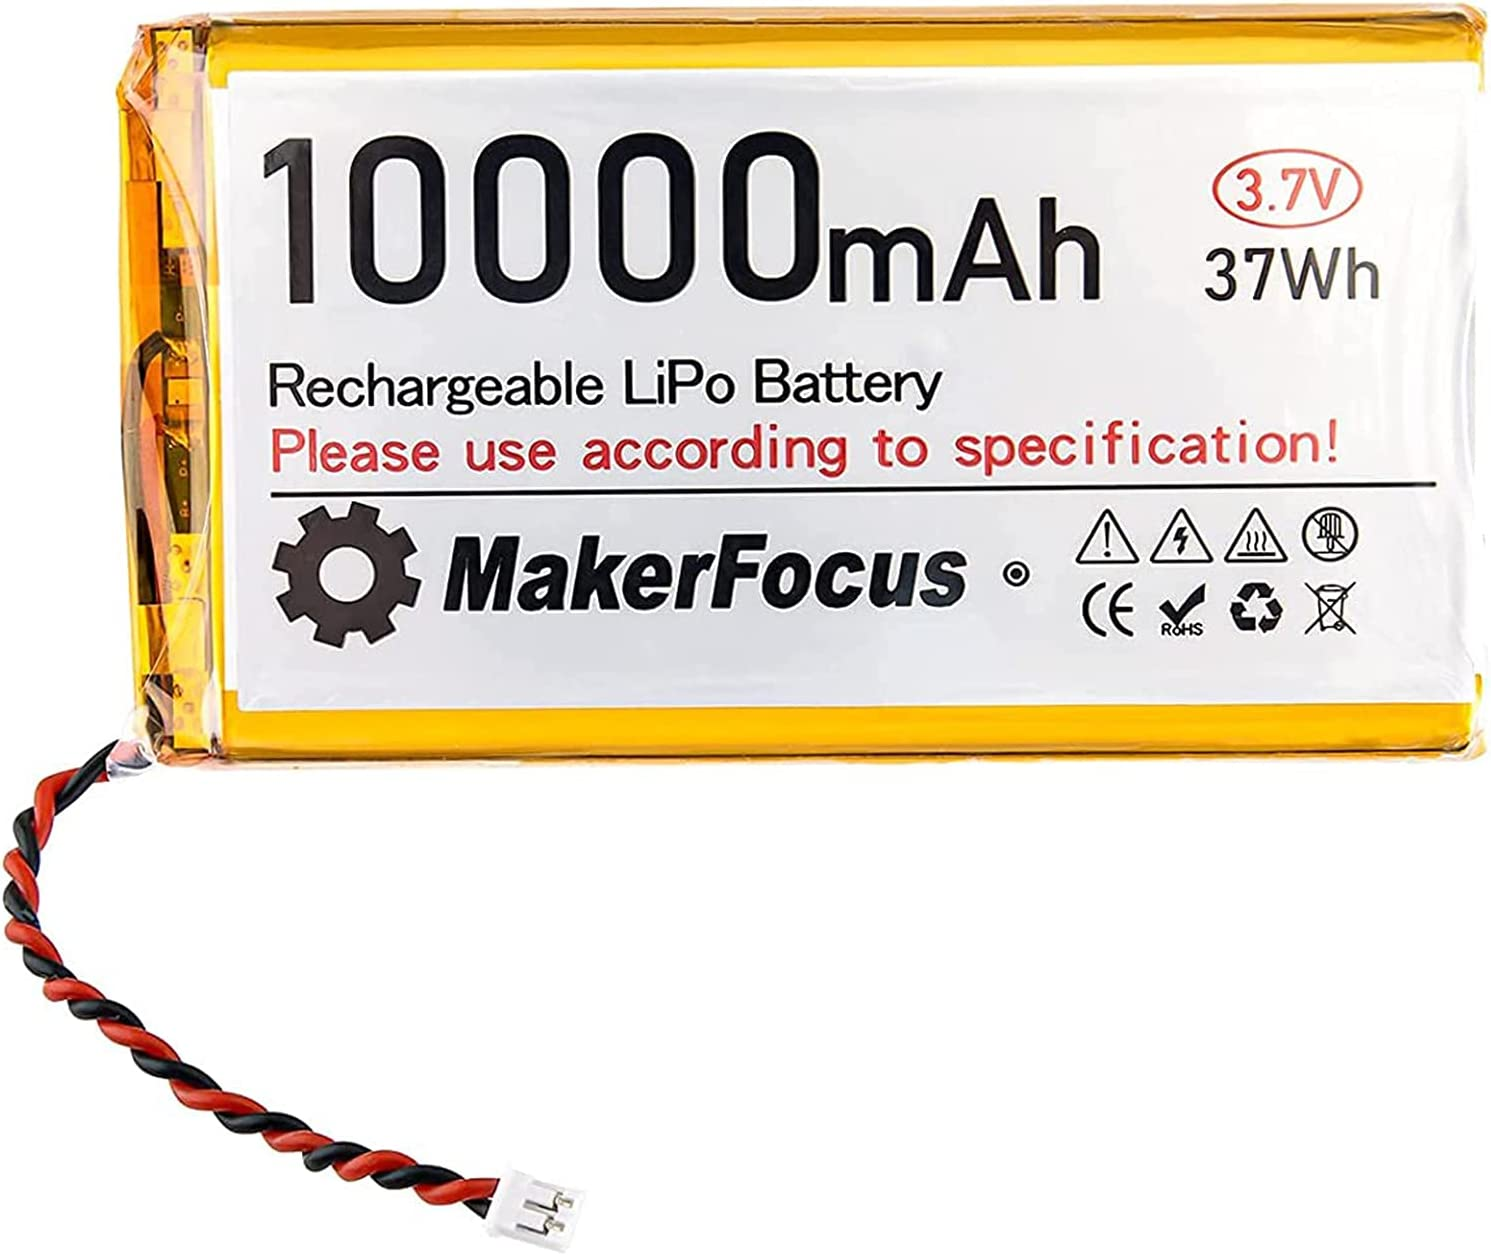 3.7V Lipo Battery 10000mAh Lithium Rechargeable Battery 9065115 with Micro PH2.0 Plug for Raspberry Pi UPS Board